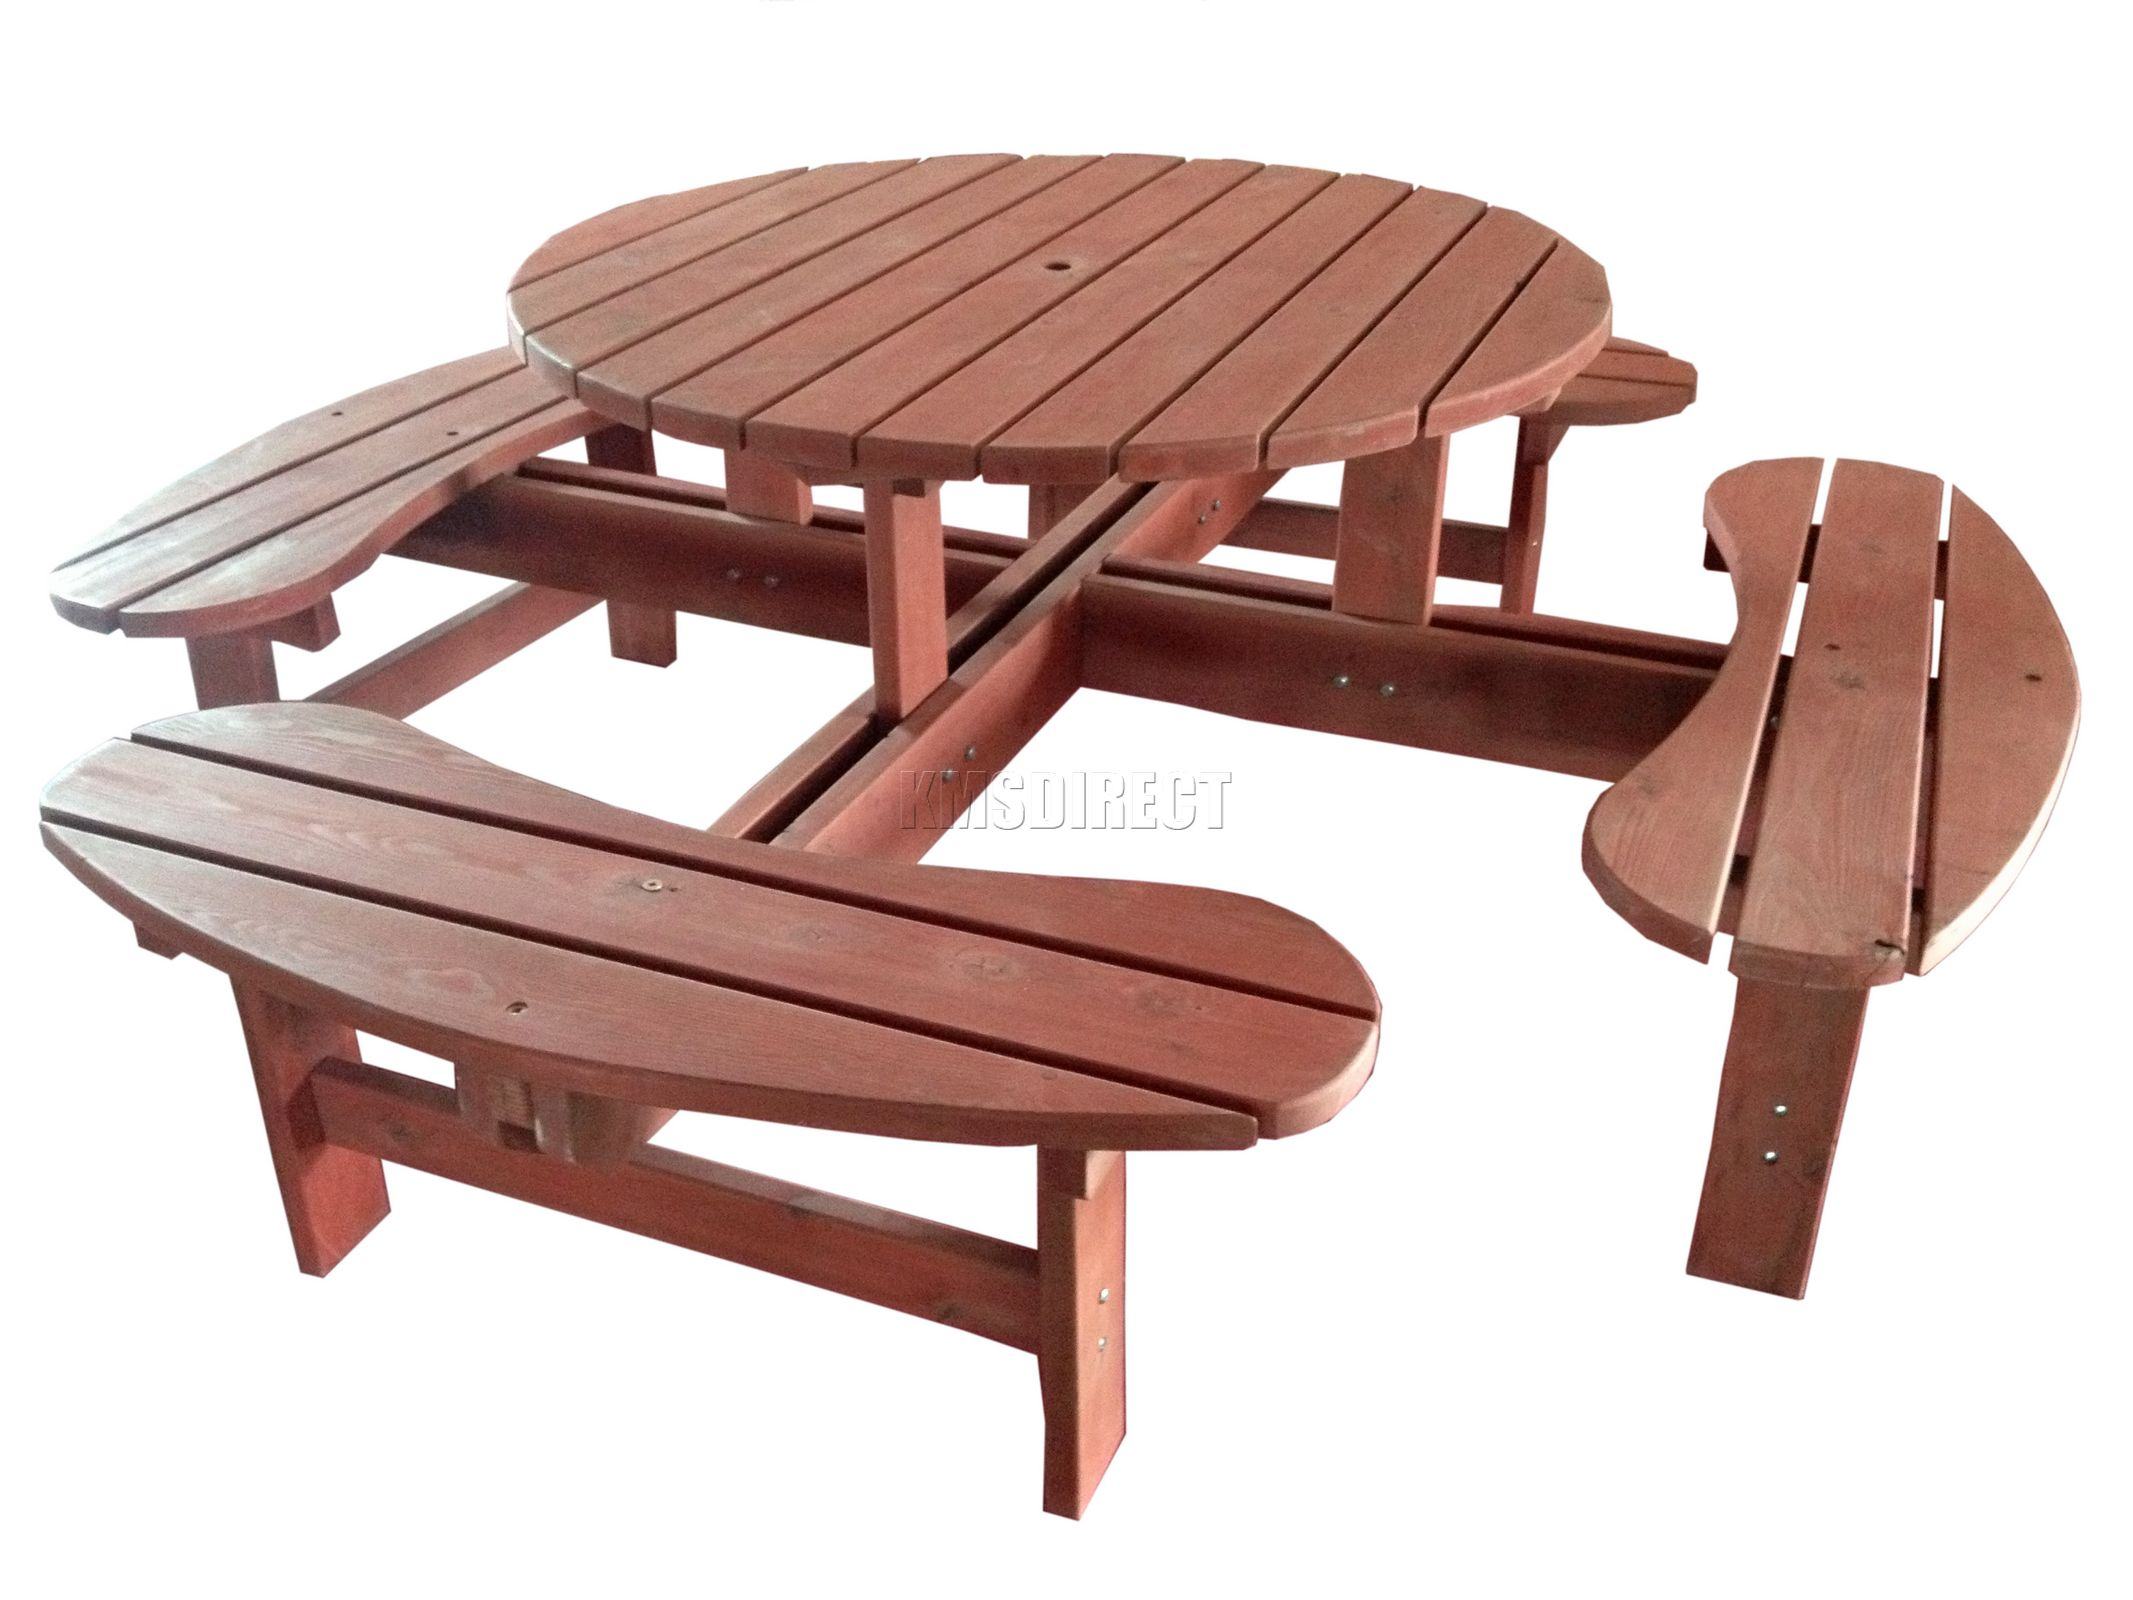 Garden patio 8 seat seater wooden pub bench round picnic for 12 seater wooden outdoor table